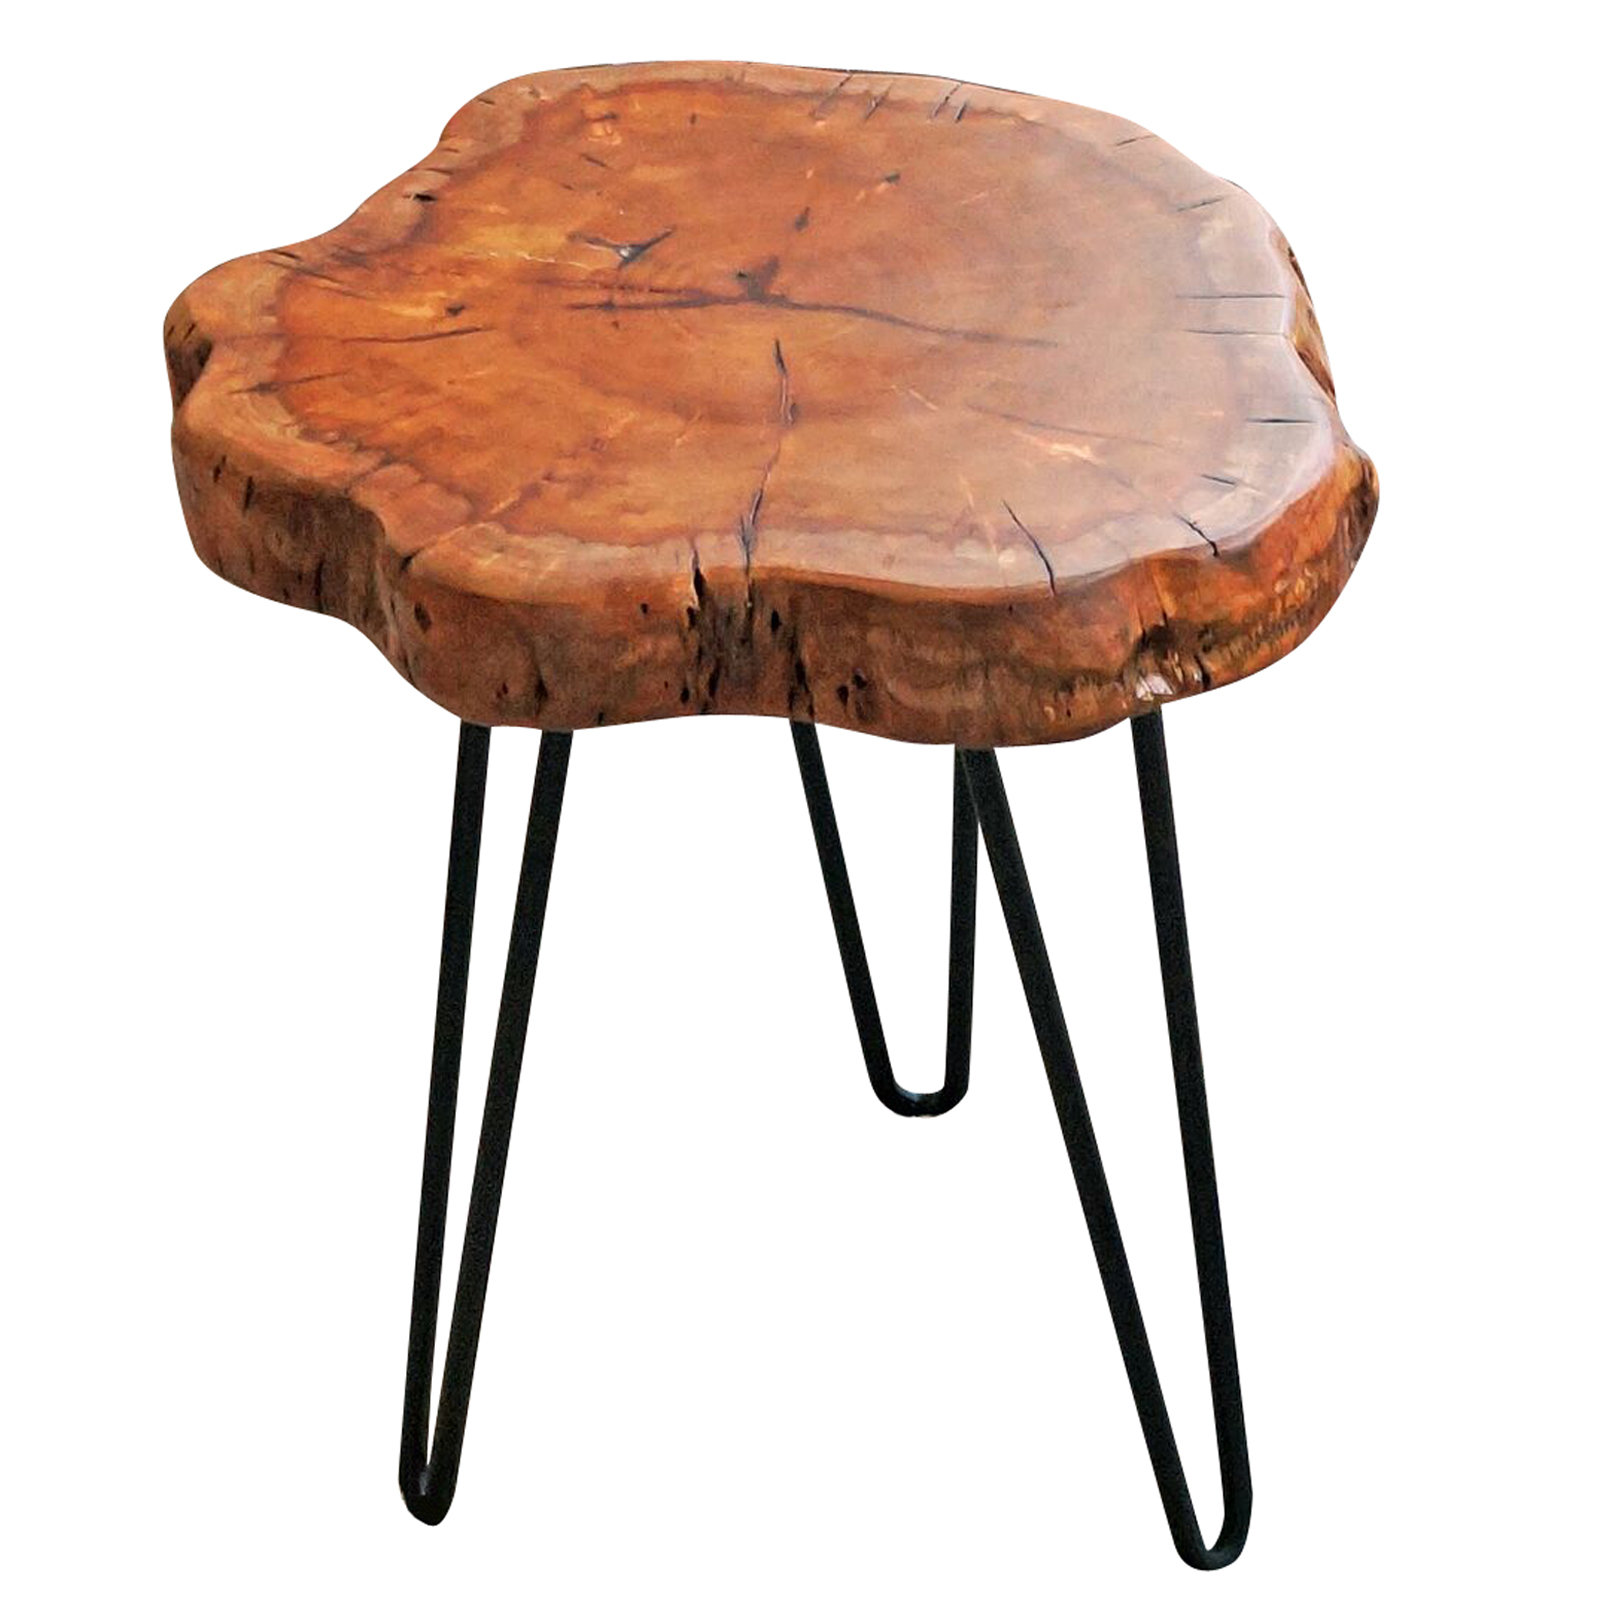 unique accent tables sari surface end table gas dryers pier one mirrored looking for coffee inch high nightstand dale tiffany lily lamp folding target frog ikea bathroom storage